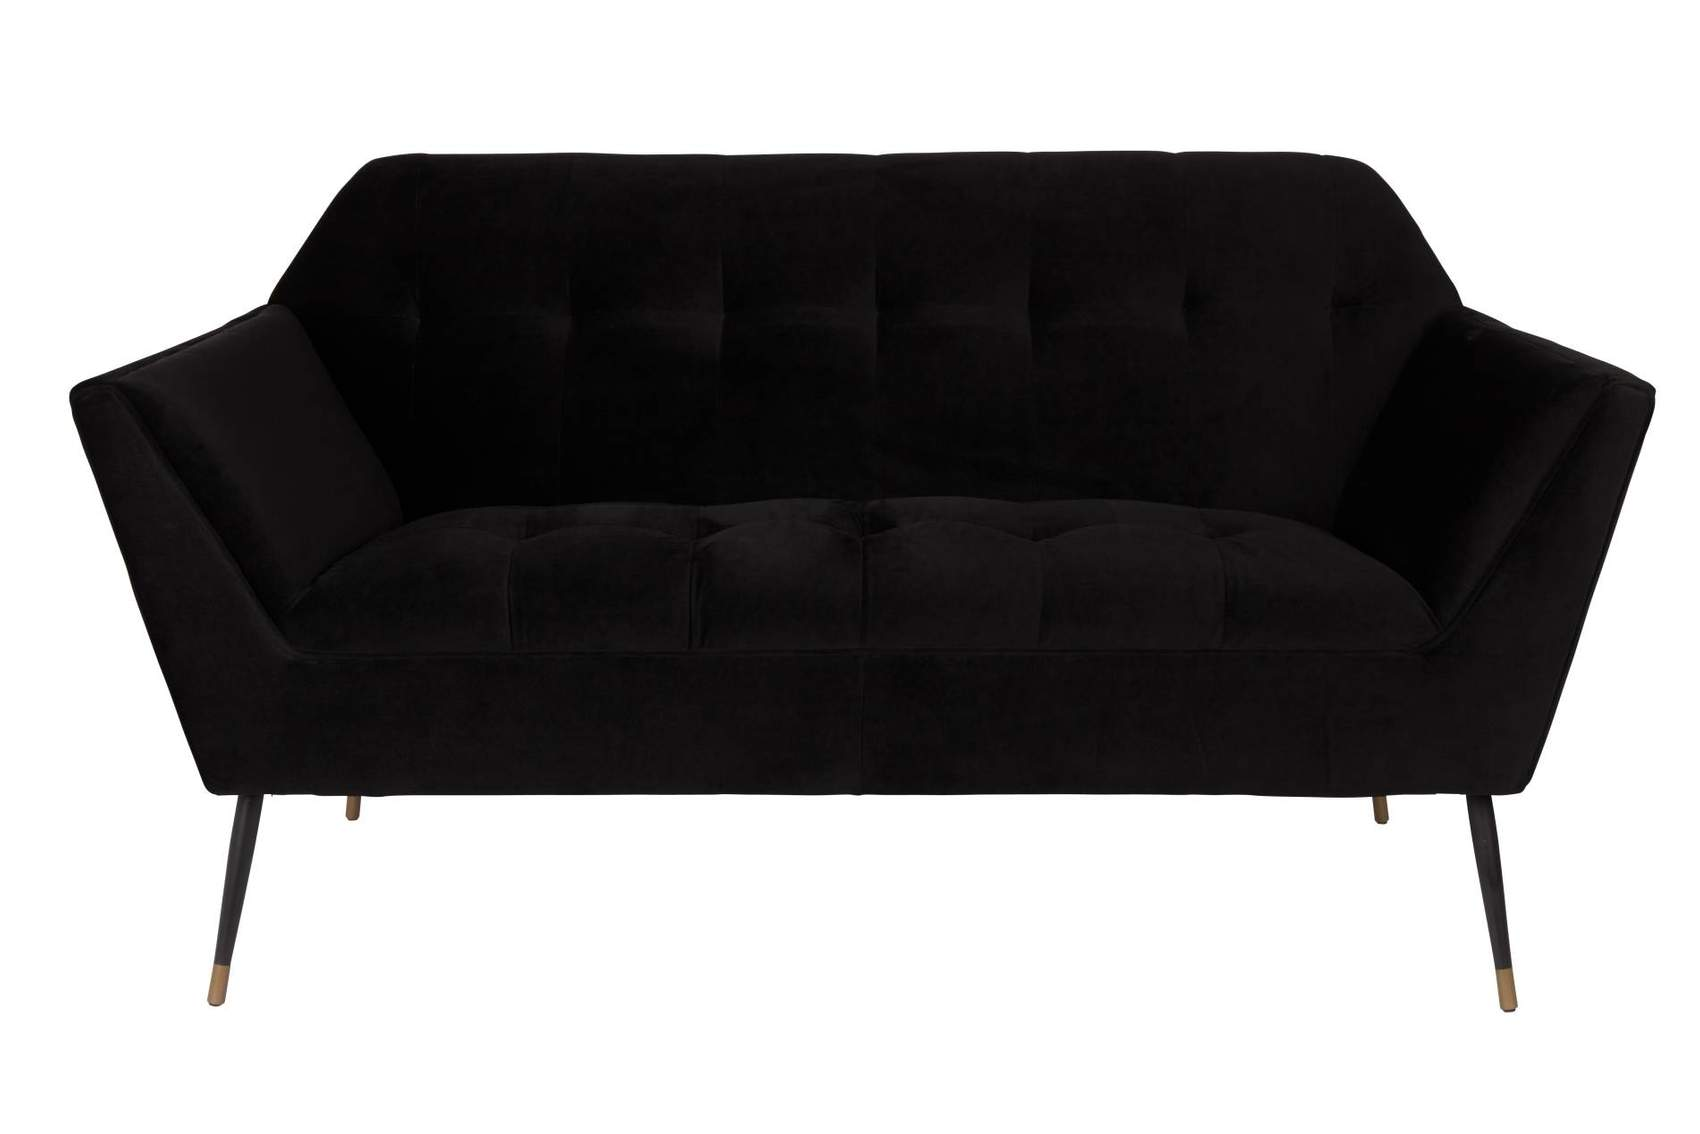 2 sitzer sofa kate black samt von dutchbone. Black Bedroom Furniture Sets. Home Design Ideas